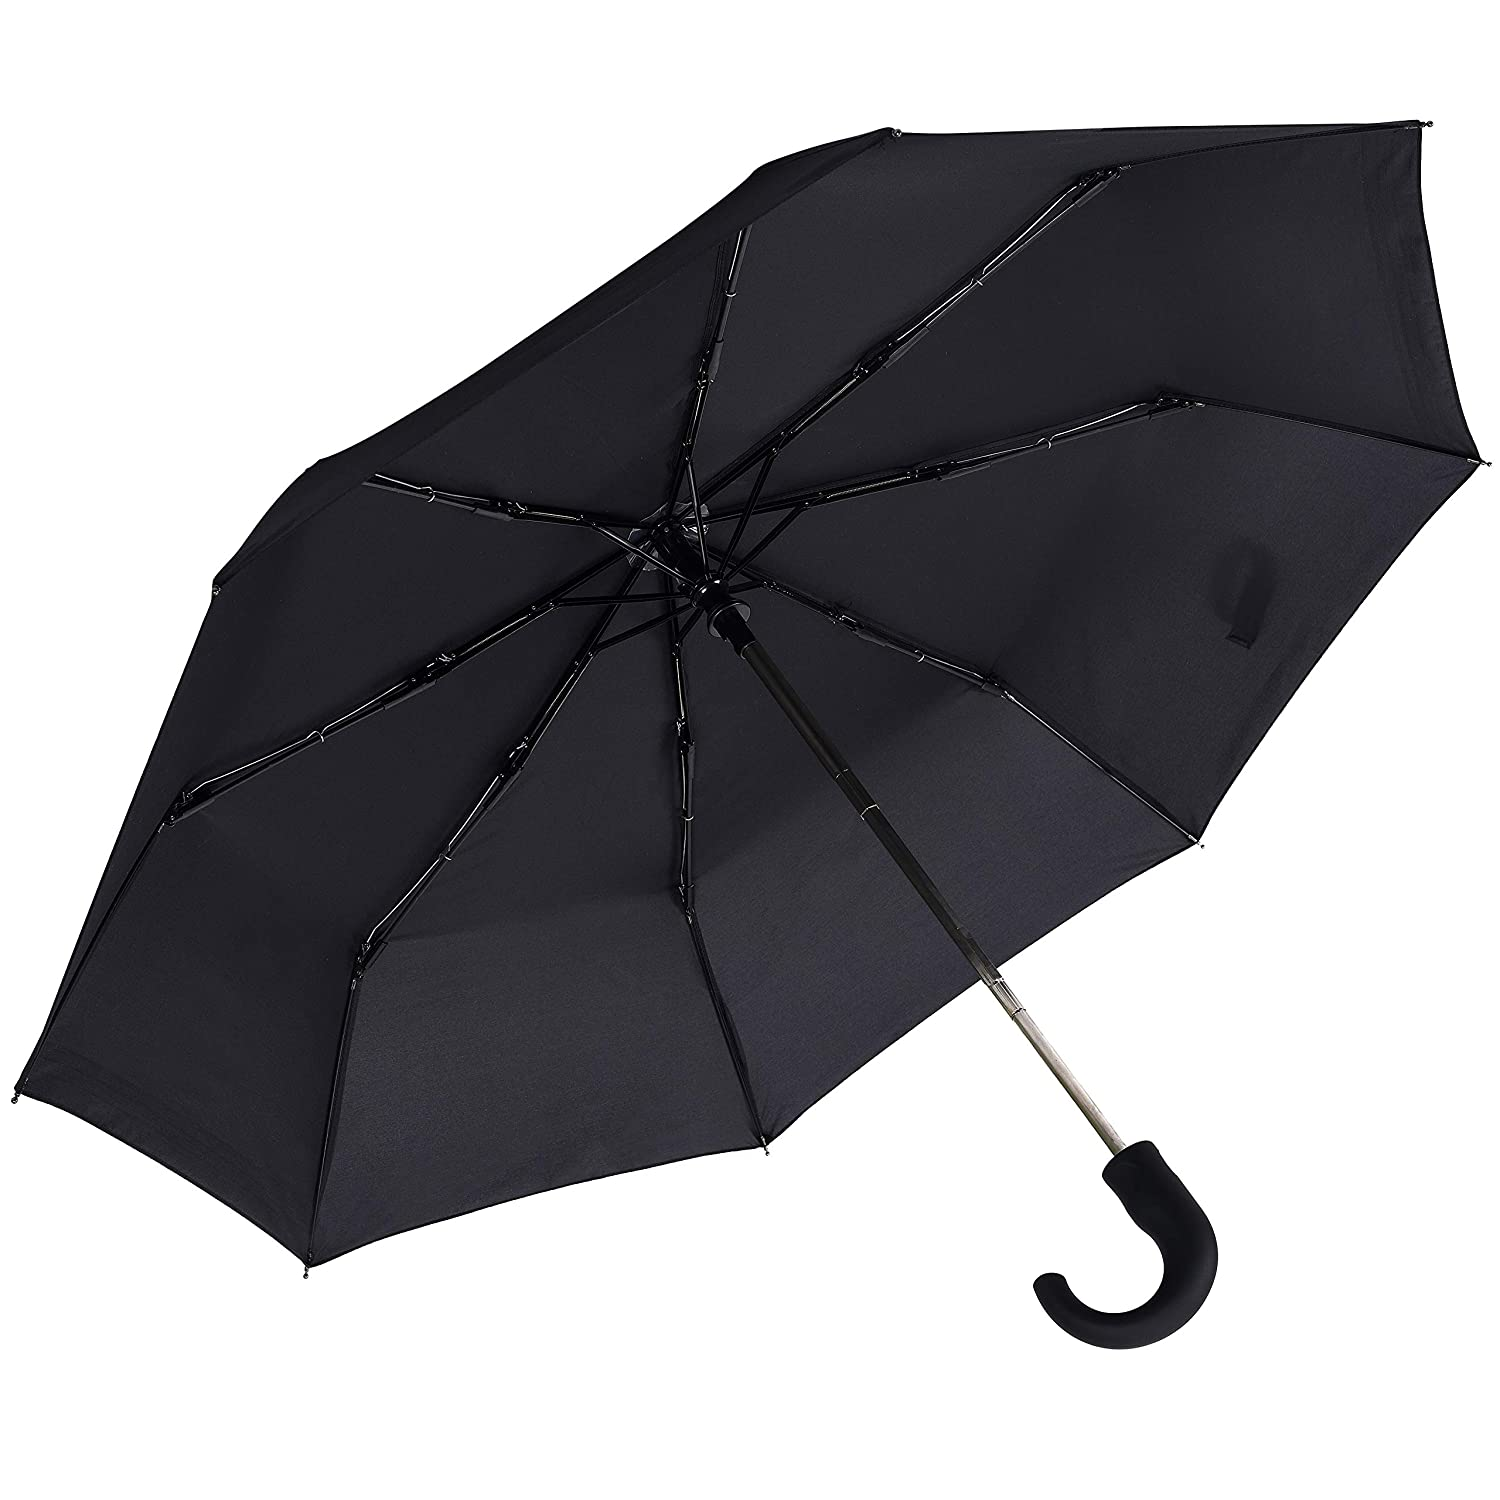 Black Mens Umbrella,Rainbrace 42 Inches Windproof Compact Folding Umbrella Auto Open & Close with Crook Handle